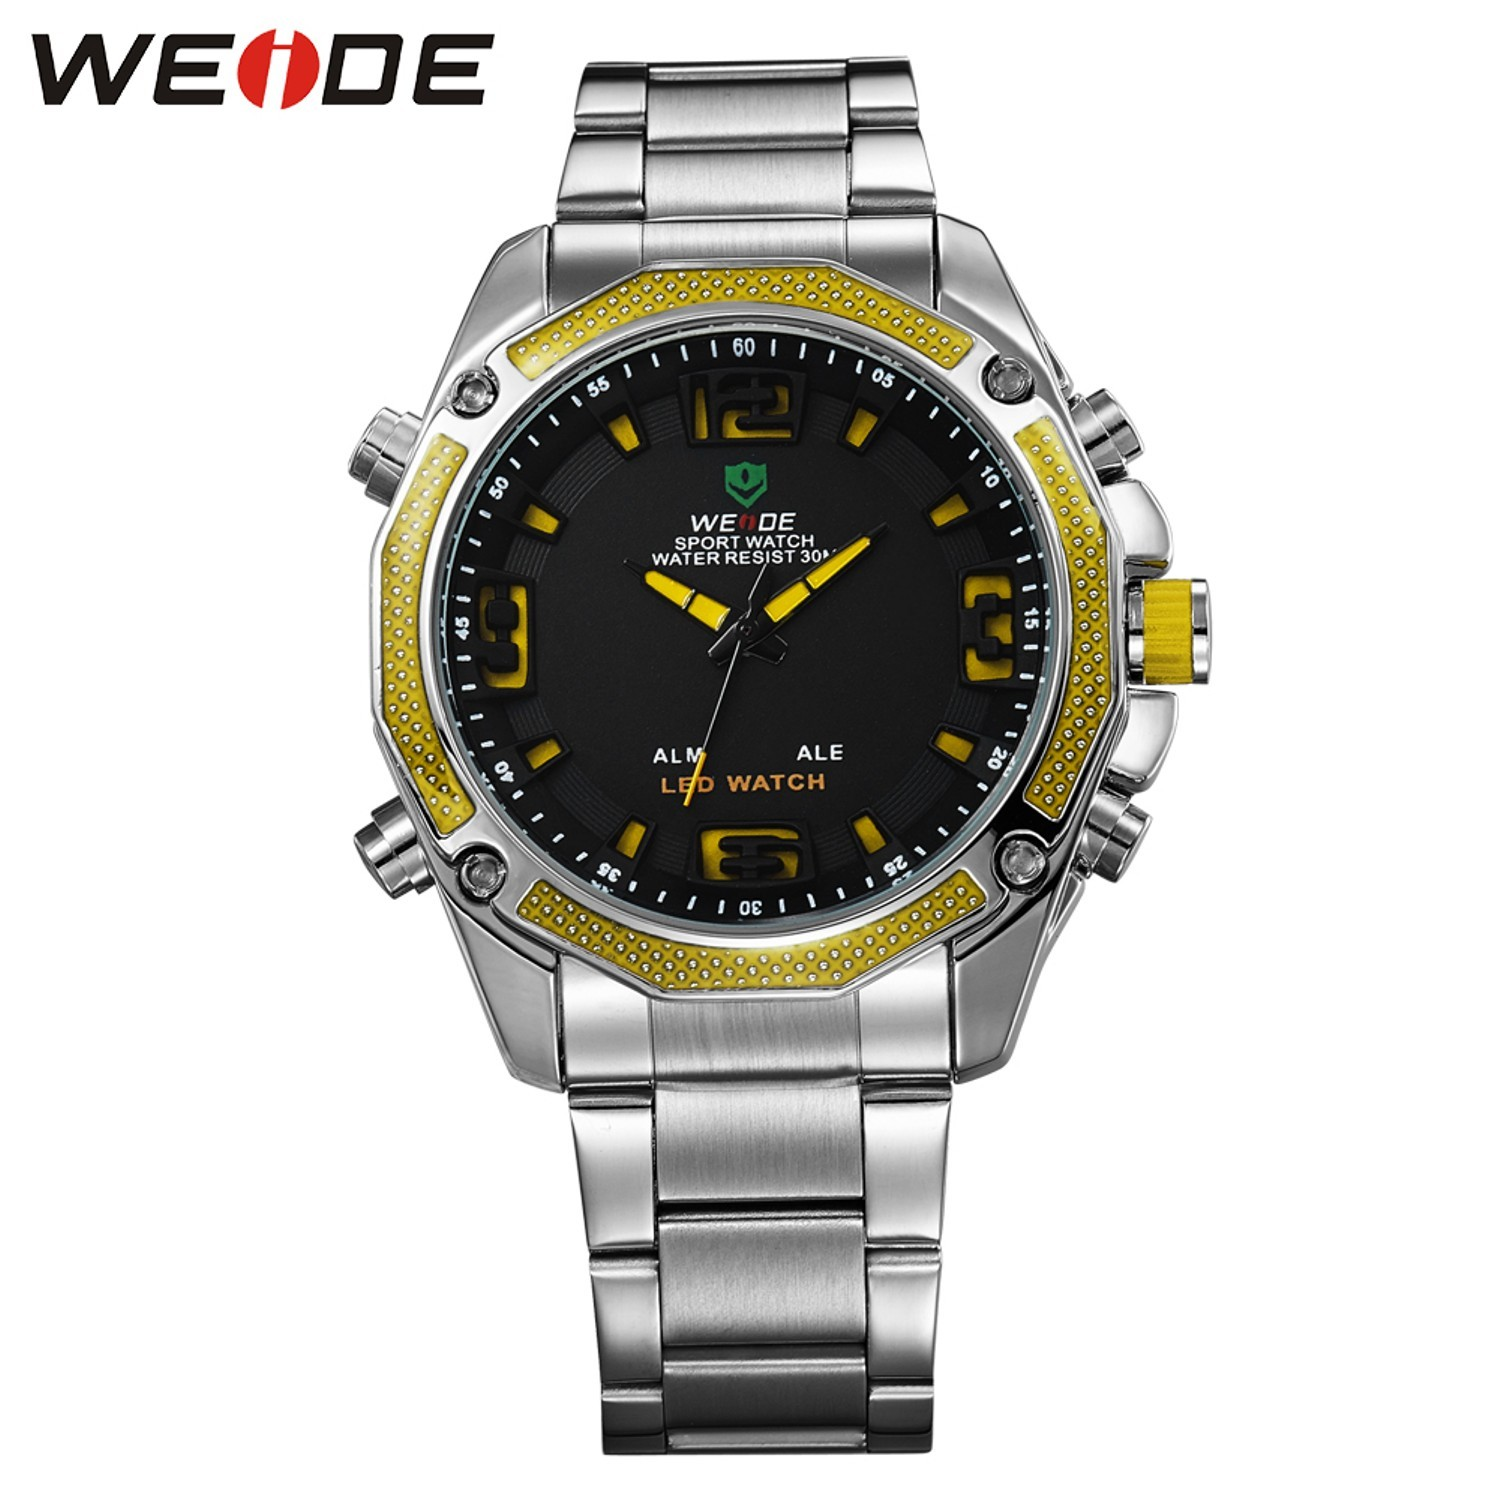 WEIDE-Brand-Men-s-Watches-Back-Light-Analog-Digital-LED-Display-Stainless-Steel-Band-Janpan-Movement_1500x1500_STRETCH_318.jpg